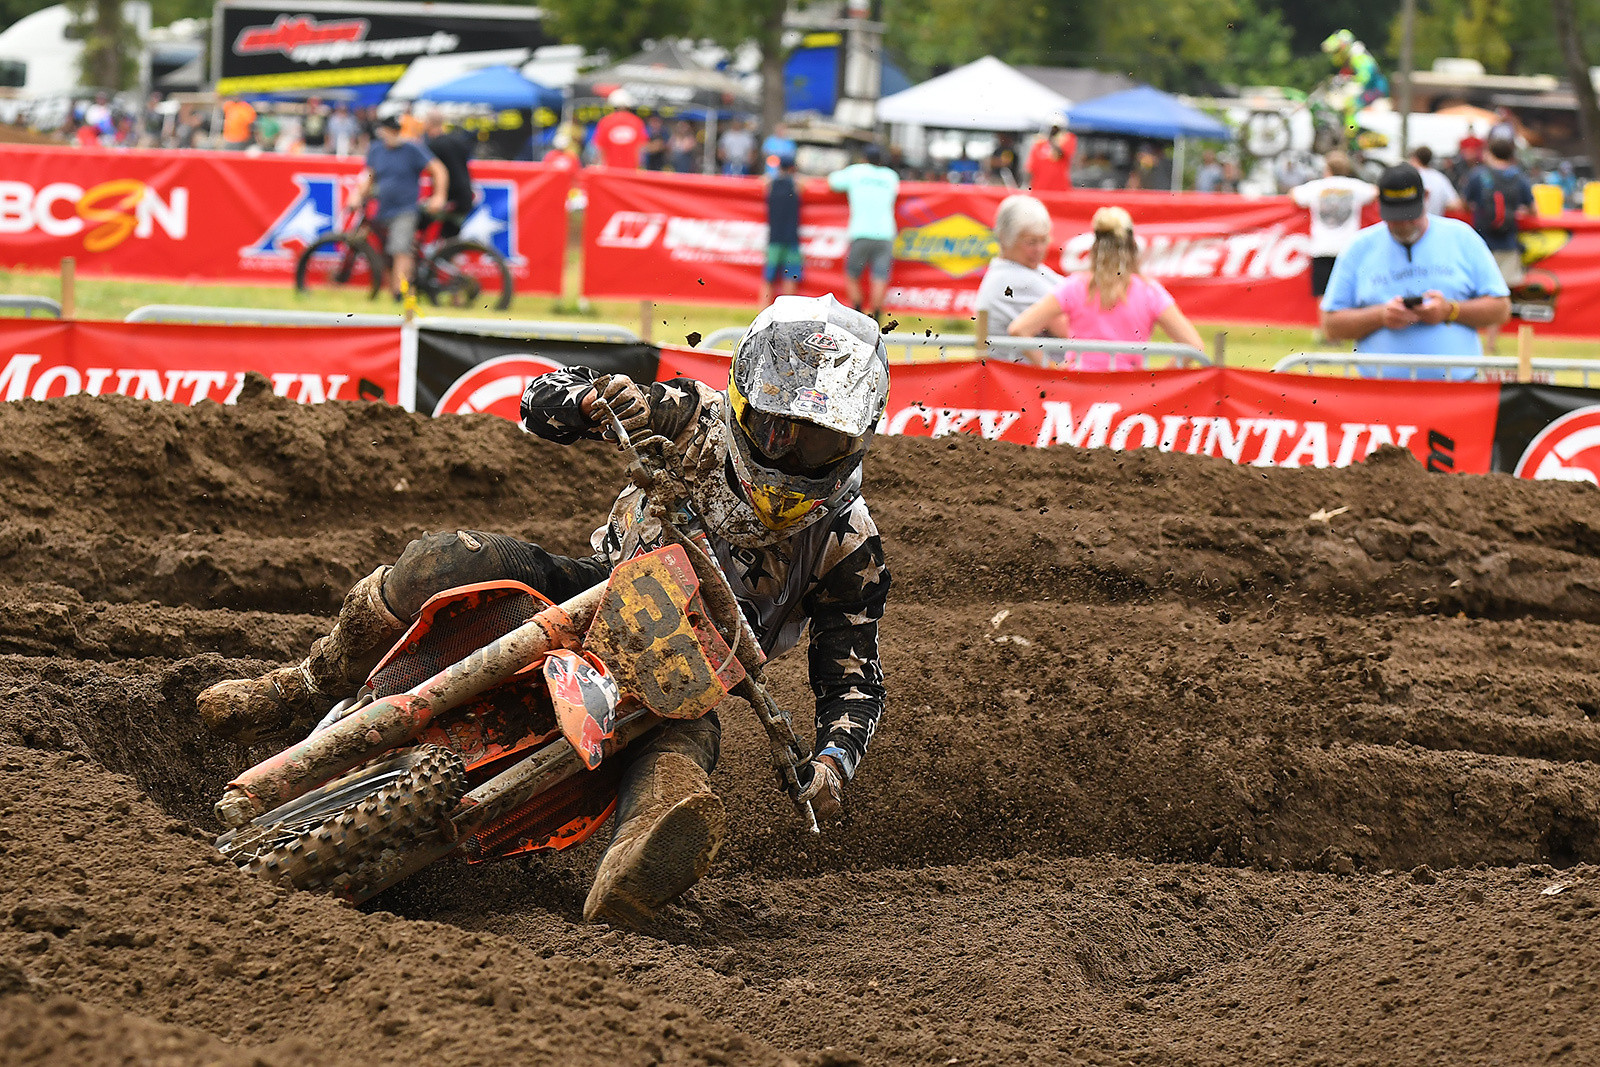 Derek Drake from California got on the board with the first Moto win in 250 B Limited.